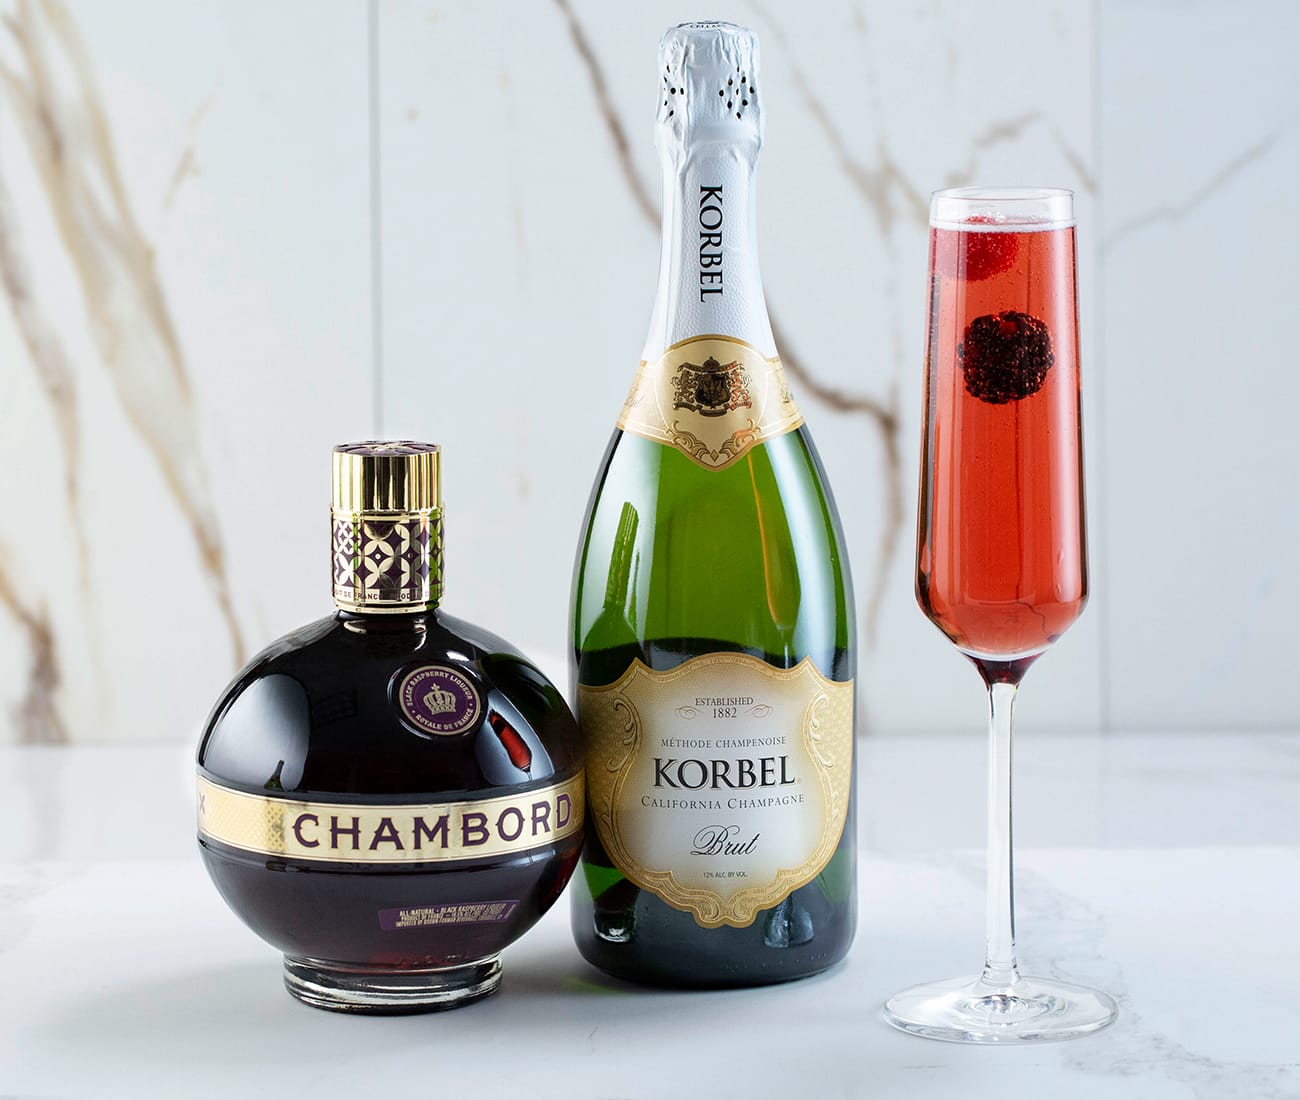 Image for Chambord Royale